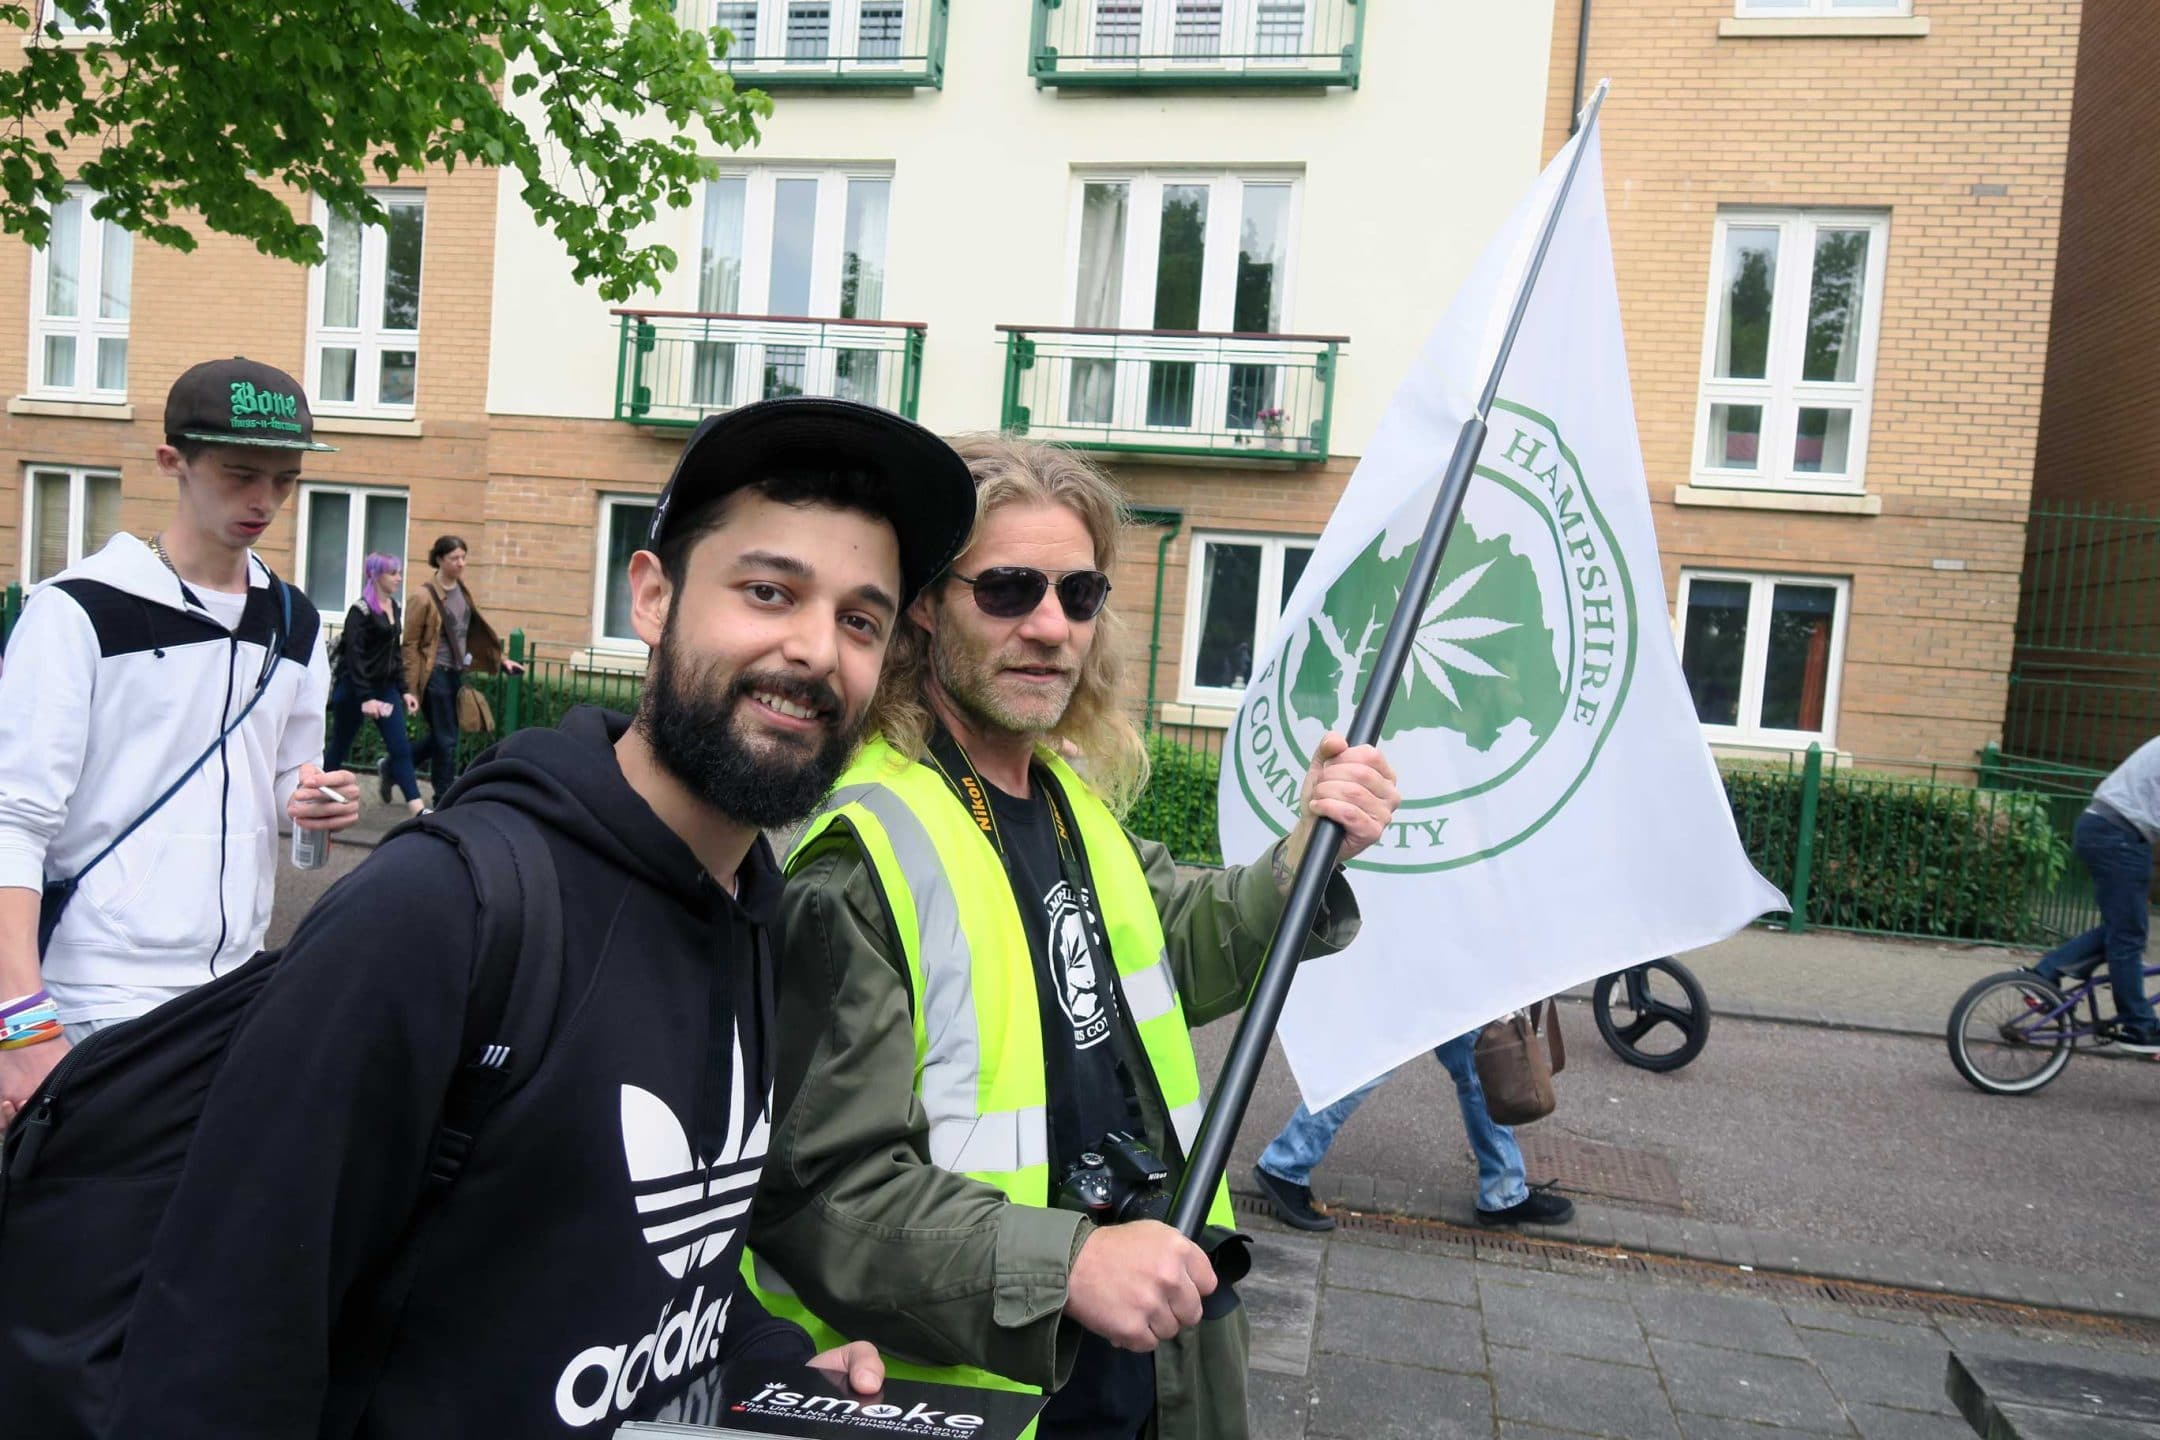 Cardiff Global Cannabis March 2017, We attended the Cardiff Global Cannabis March 2017